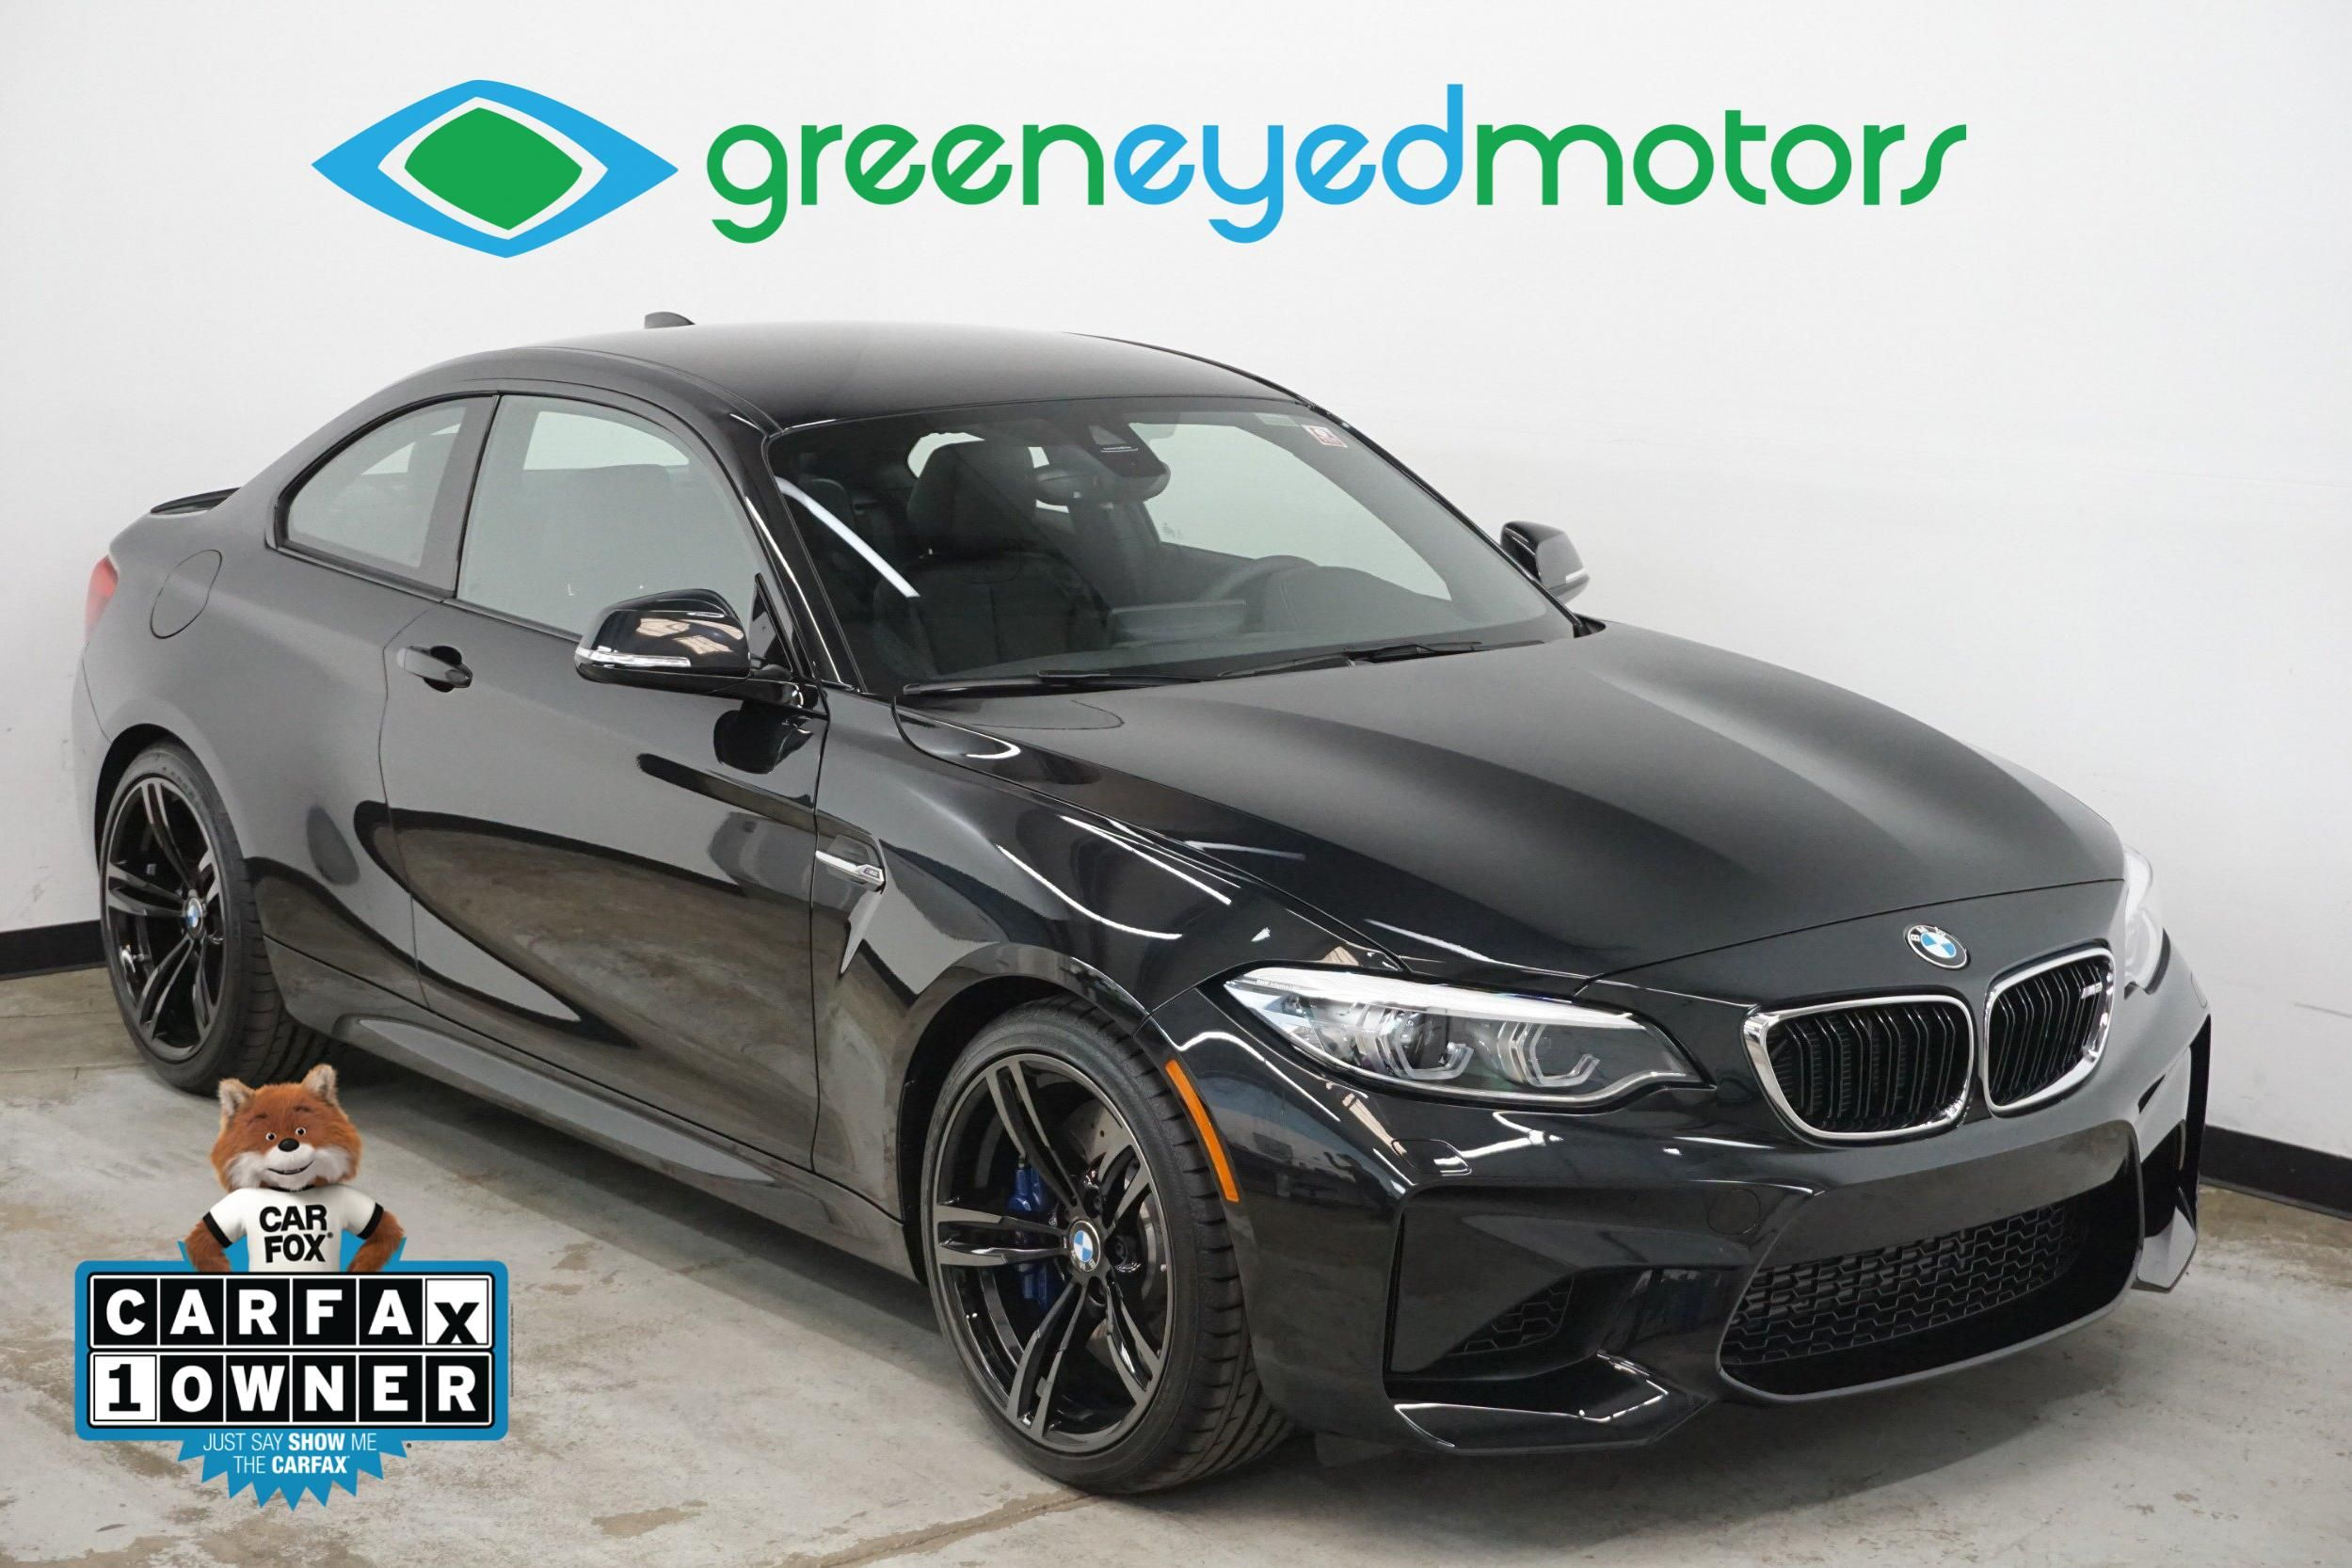 2018 bmw m2 green eyed motors rh greeneyedmotors com